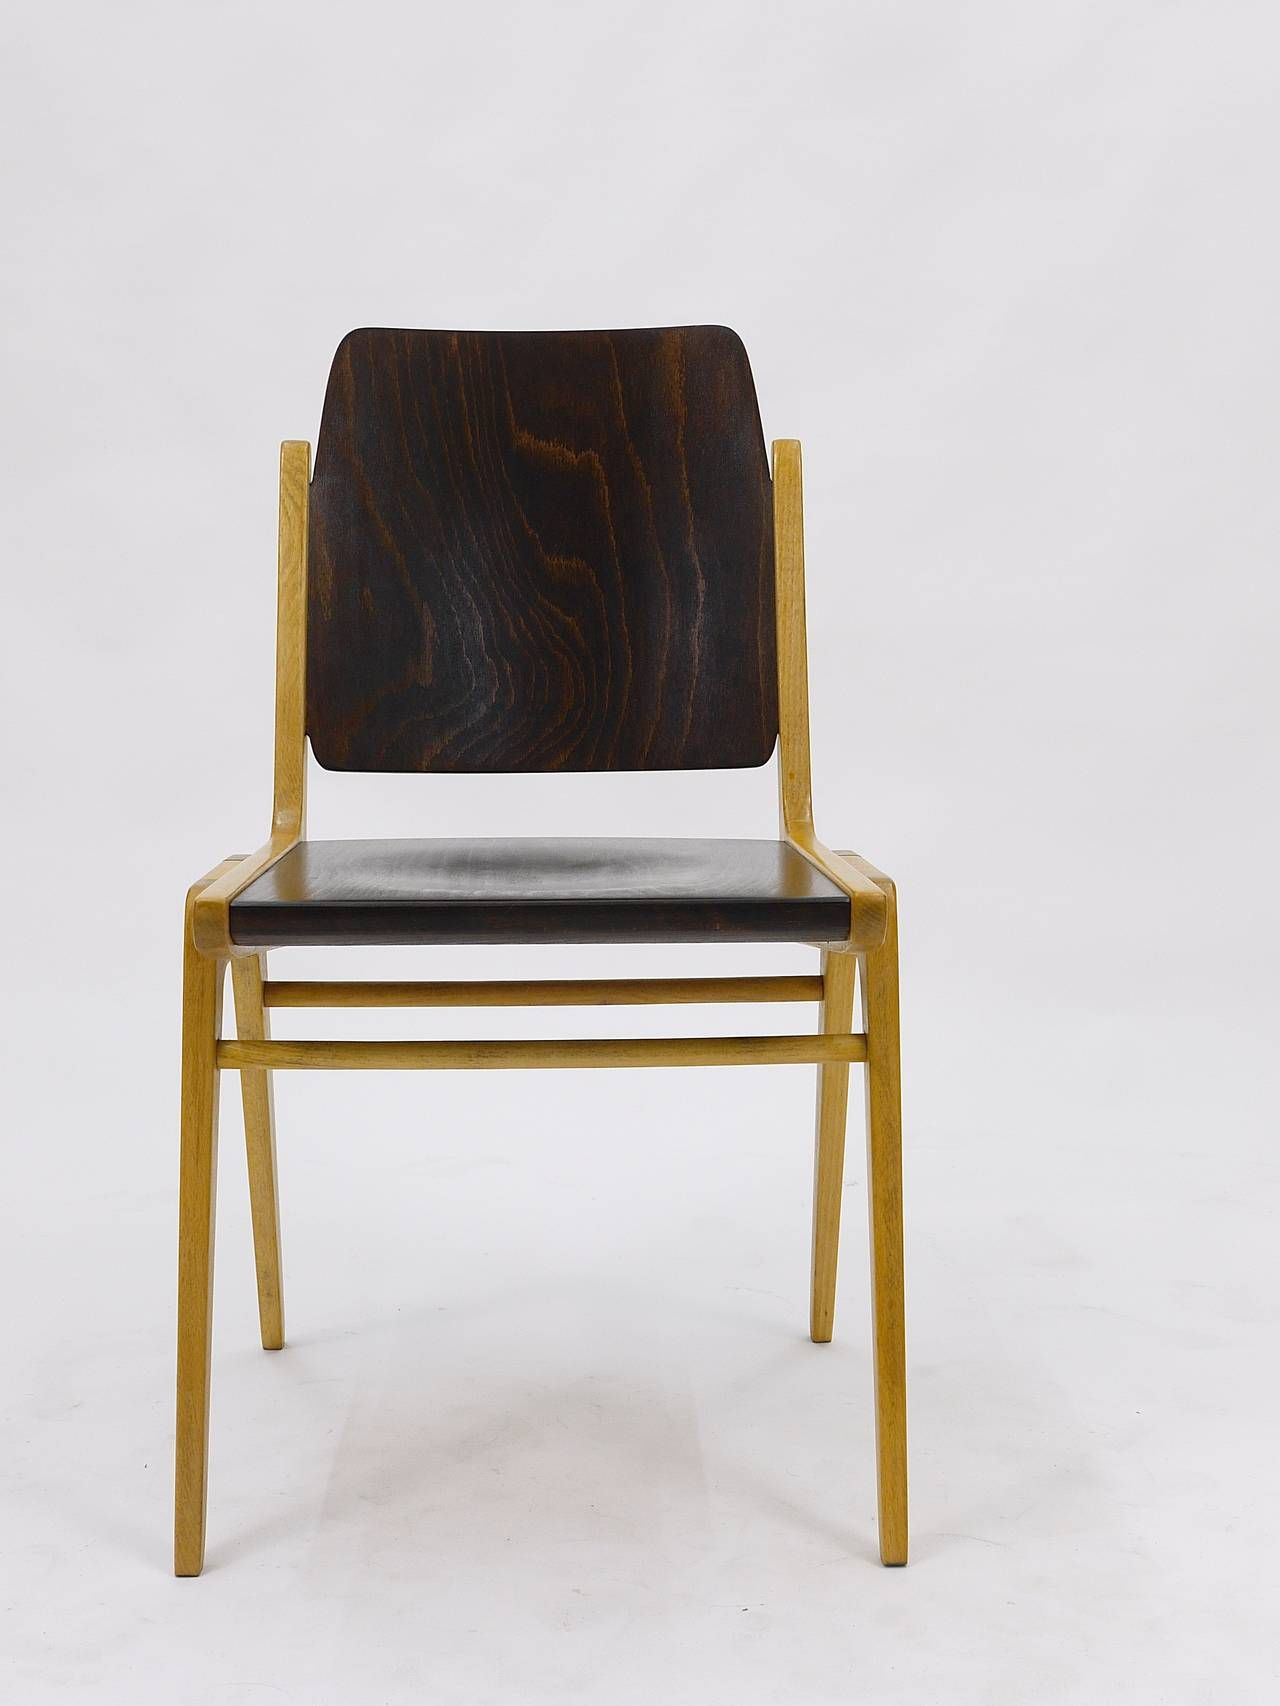 up to 12 austro chair stacking chairs by franz schuster, wiesner